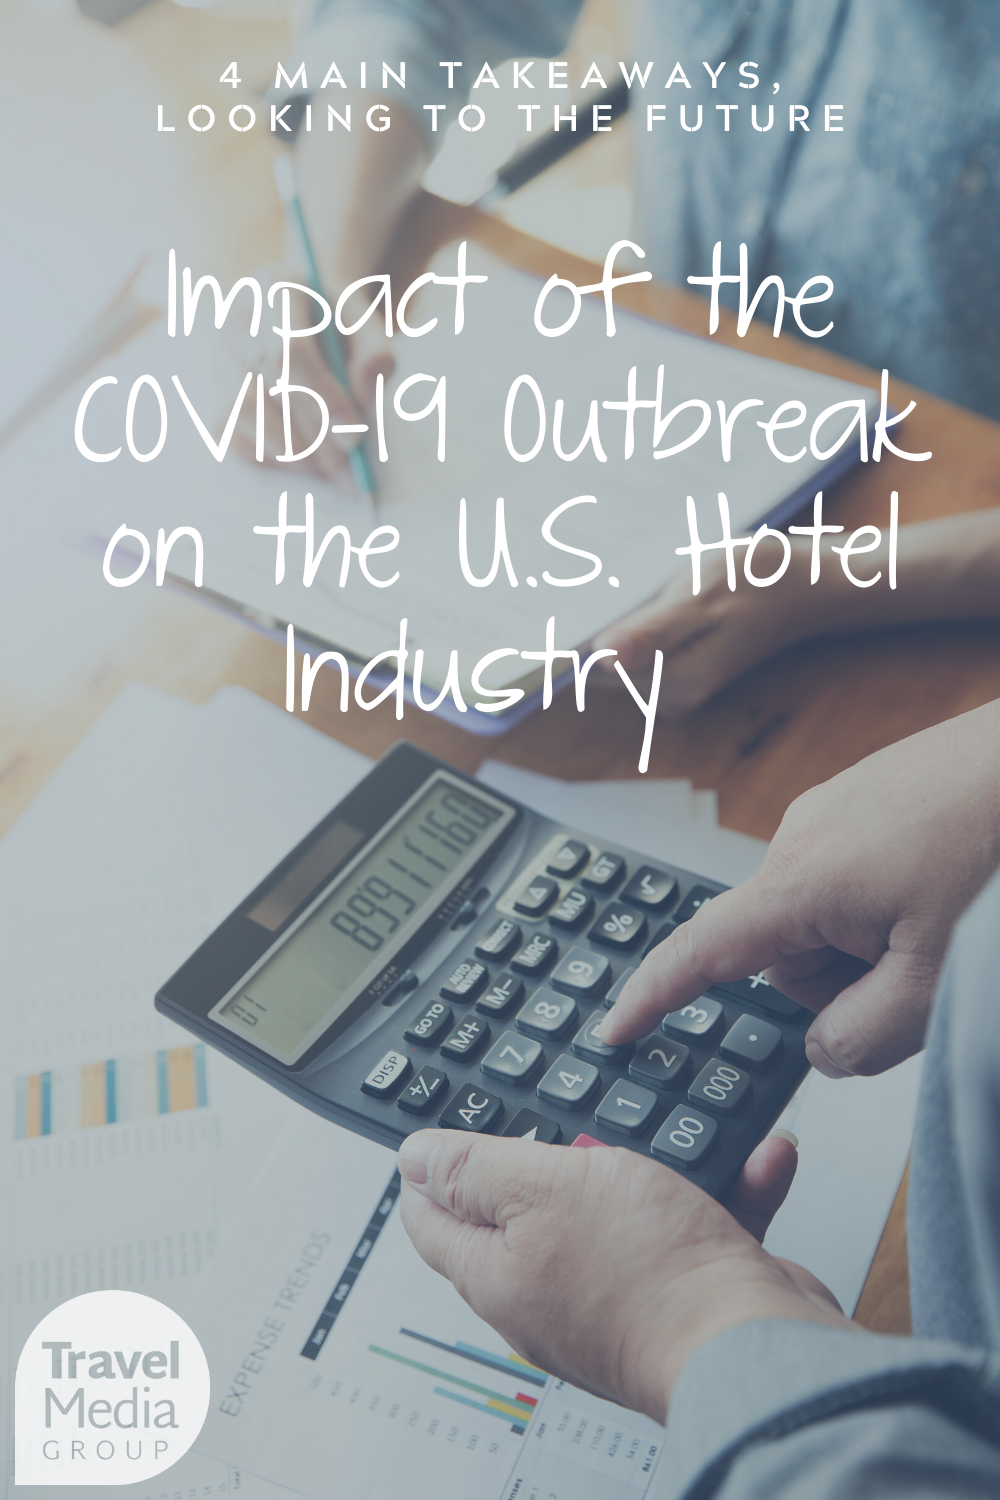 STR delivered a webinar about the impact of COVID-19 on the hotel industry. What do these numbers mean for you, and what outlook do we see for the future? This blog covers both topics in-depth.